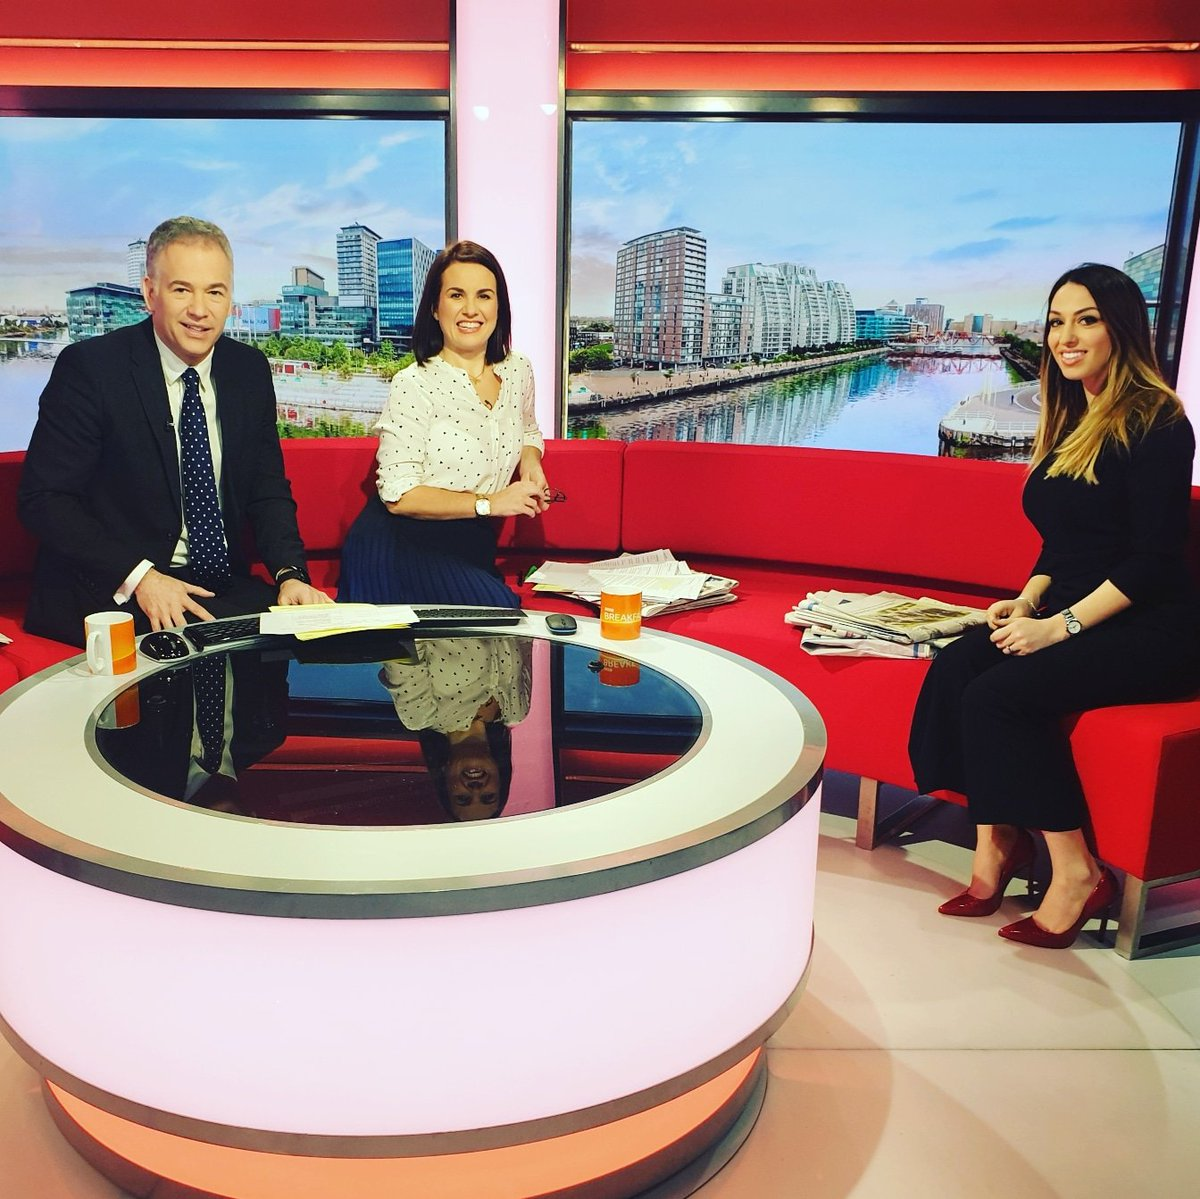 Back on the @BBCBreakfast sofa at 0820 for a second round up of the papers. See you then!